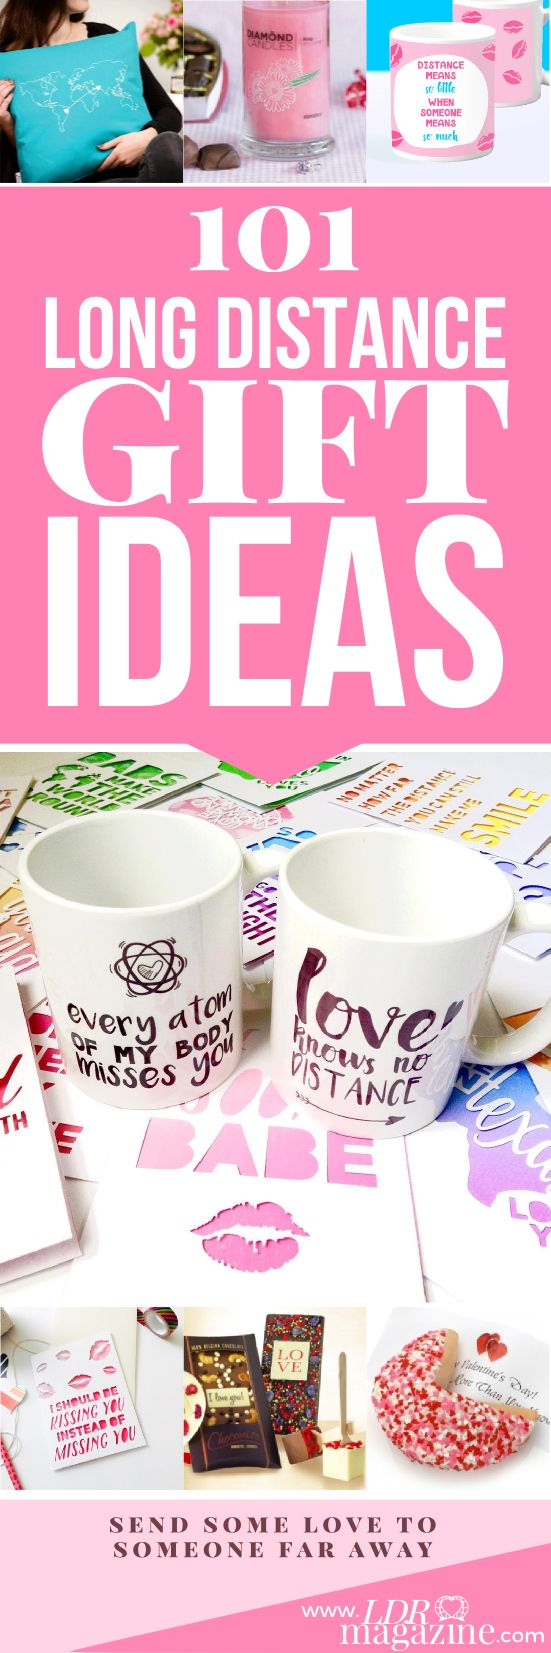 17 Best Ideas About Long Distance Birthday On Pinterest Relationship Gift Personalized Maps